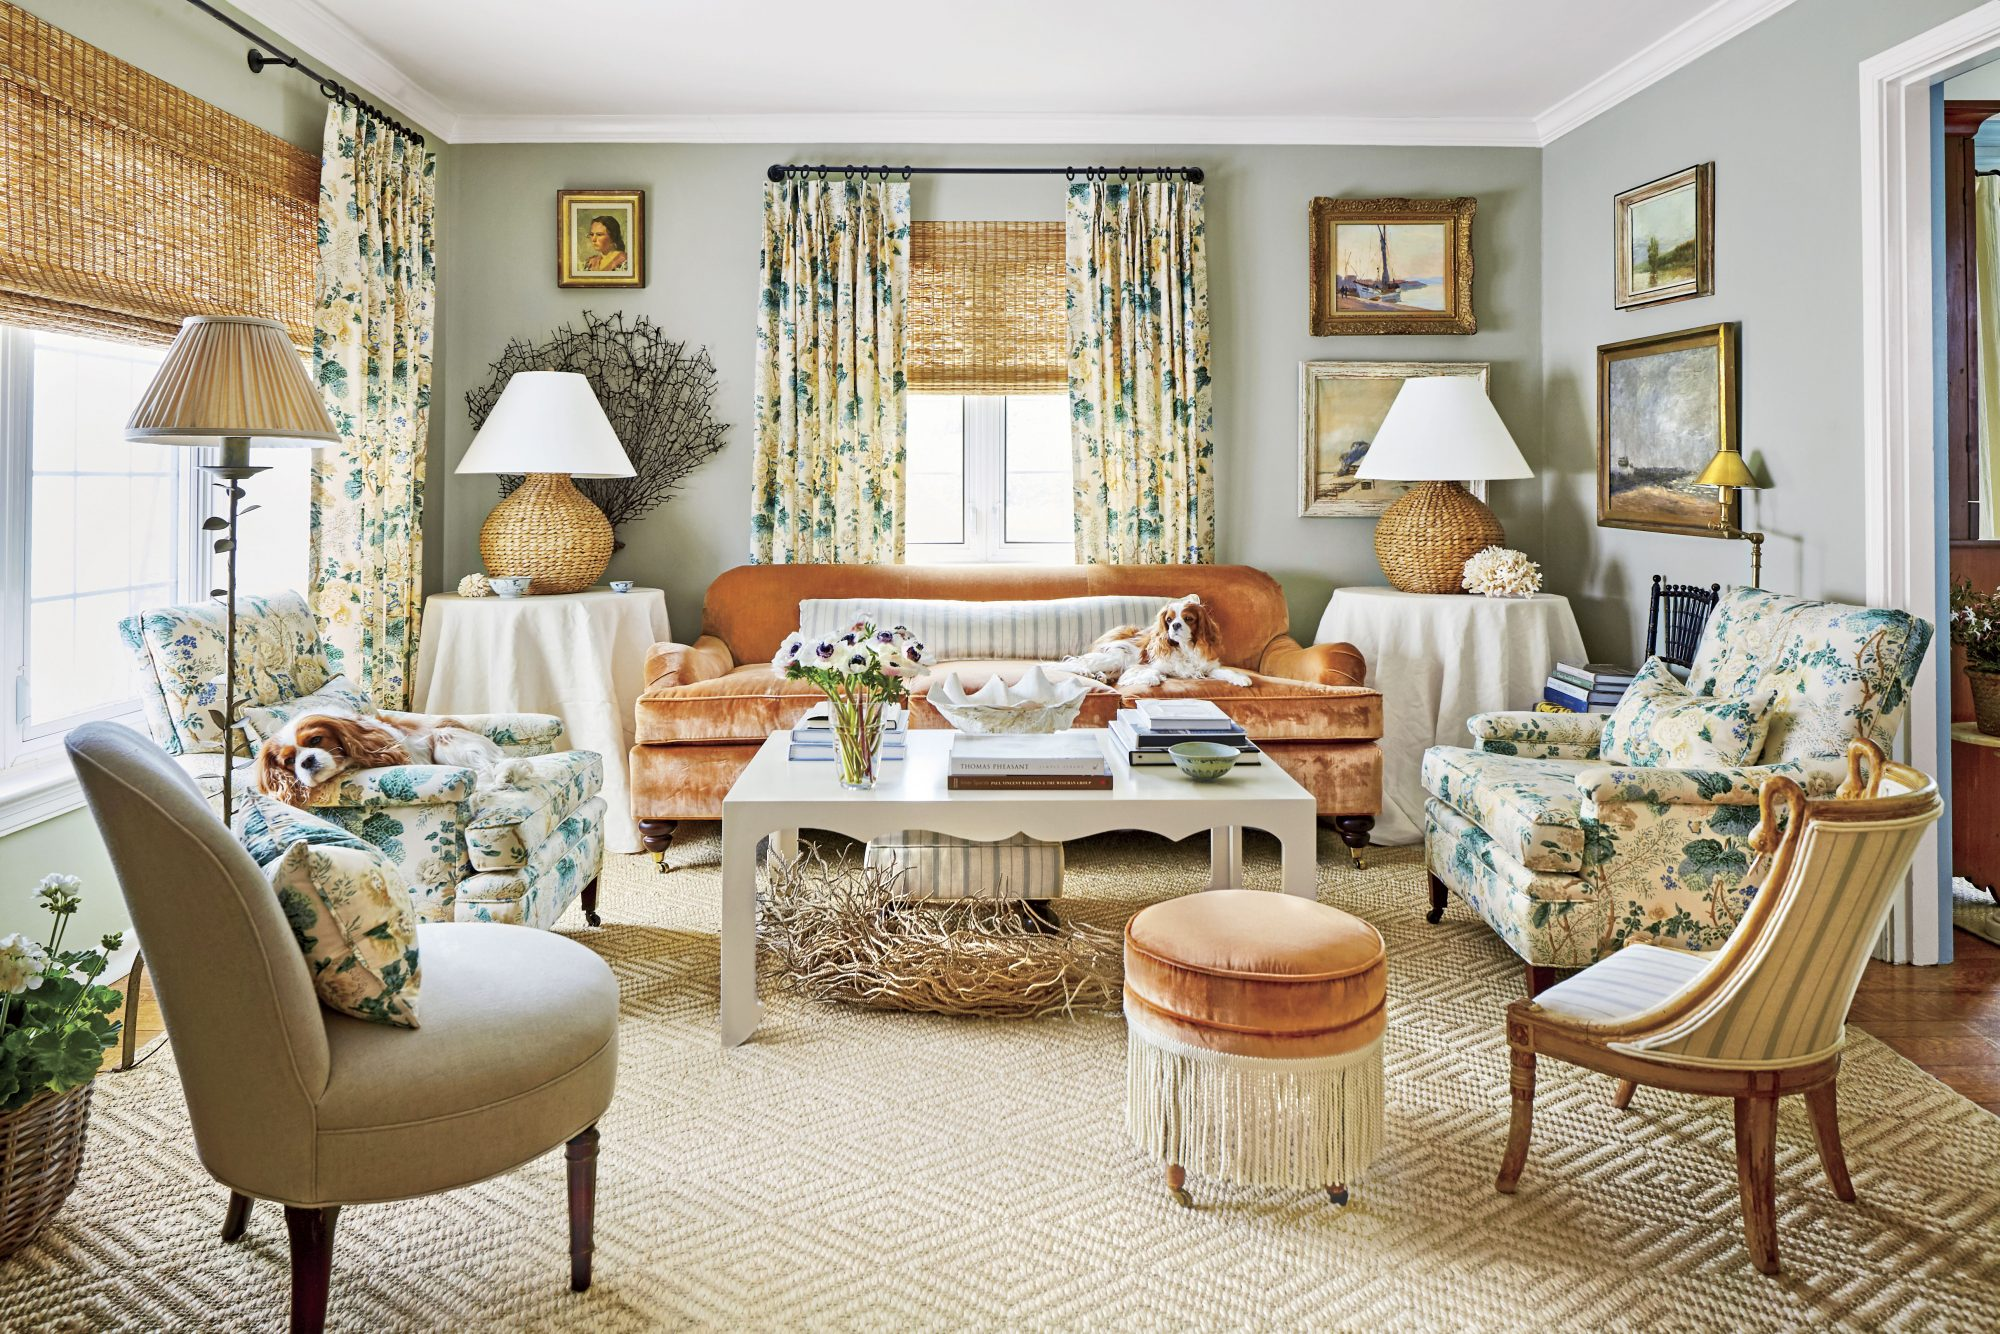 Easy Rules For Hanging Curtains Southern Living